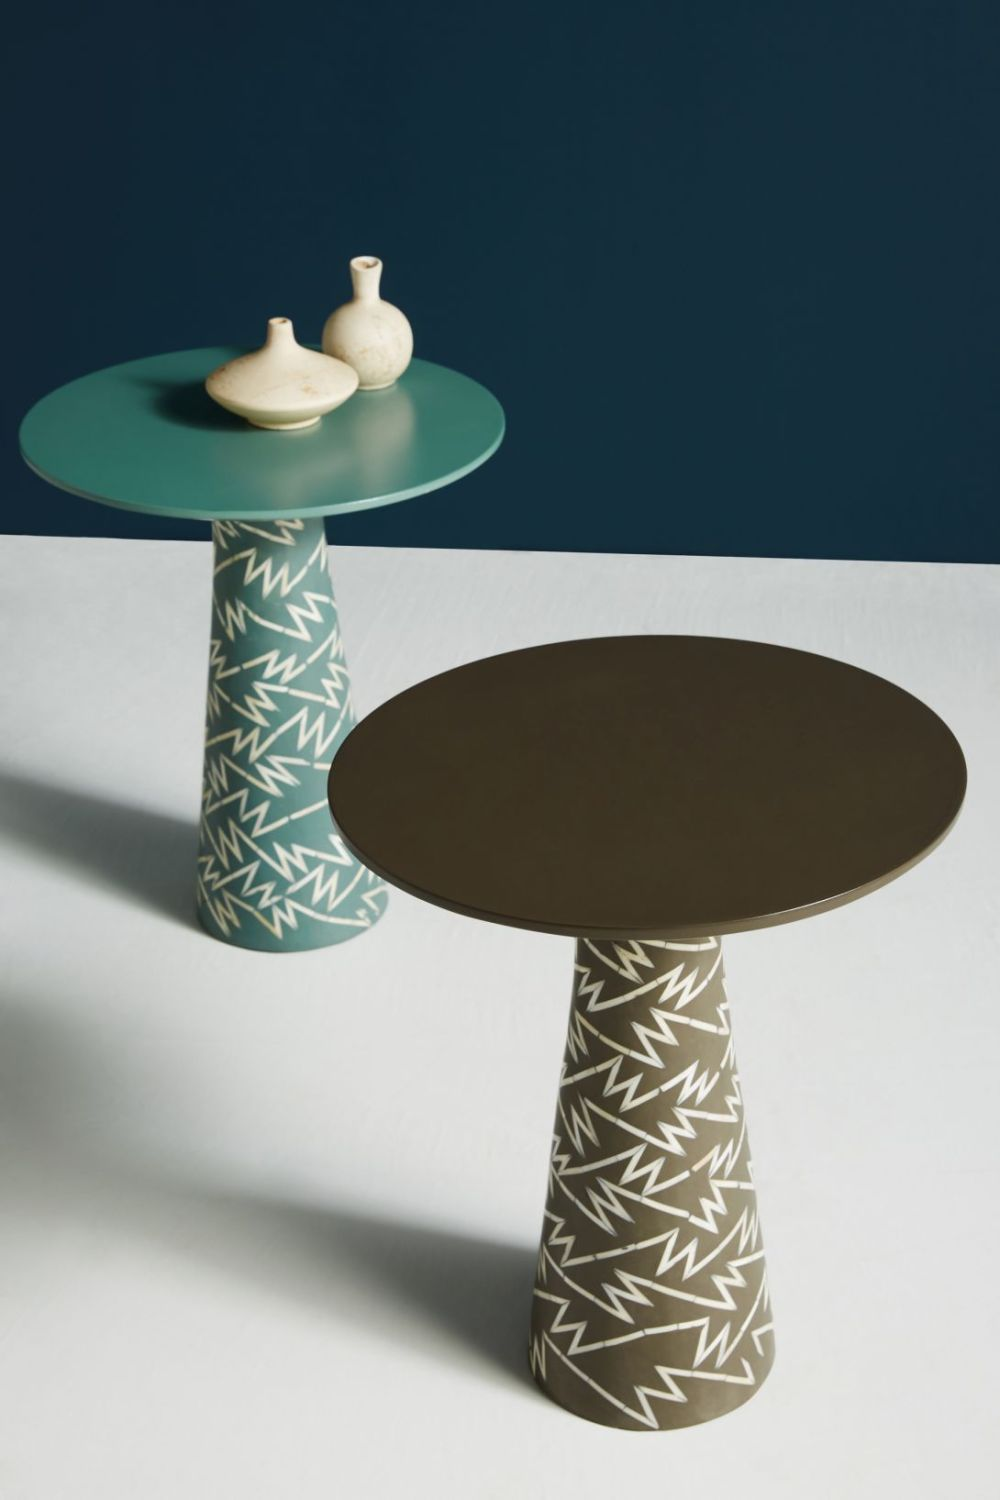 Anthropologie will be dropping a dreamy collection of furniture that have been designed by Bethan Gray this September. Welsh artist, Bethan Gray, is used to taking a hint from other cultures. Gray's previous collections have looked to the Islamic world and the architecture of Oman for inspiration. This September, her latest partnerAnthropologieare releasing a new collection for which Gray was inspired by ancient Native American cultures, and it couldn't be more on trend!With a soft millennial palette of blush pink and mint green with marble, brass and velvet accents, the collection is an excellent fit with Anthropologie's stunning Instagram-friendly aesthetic.